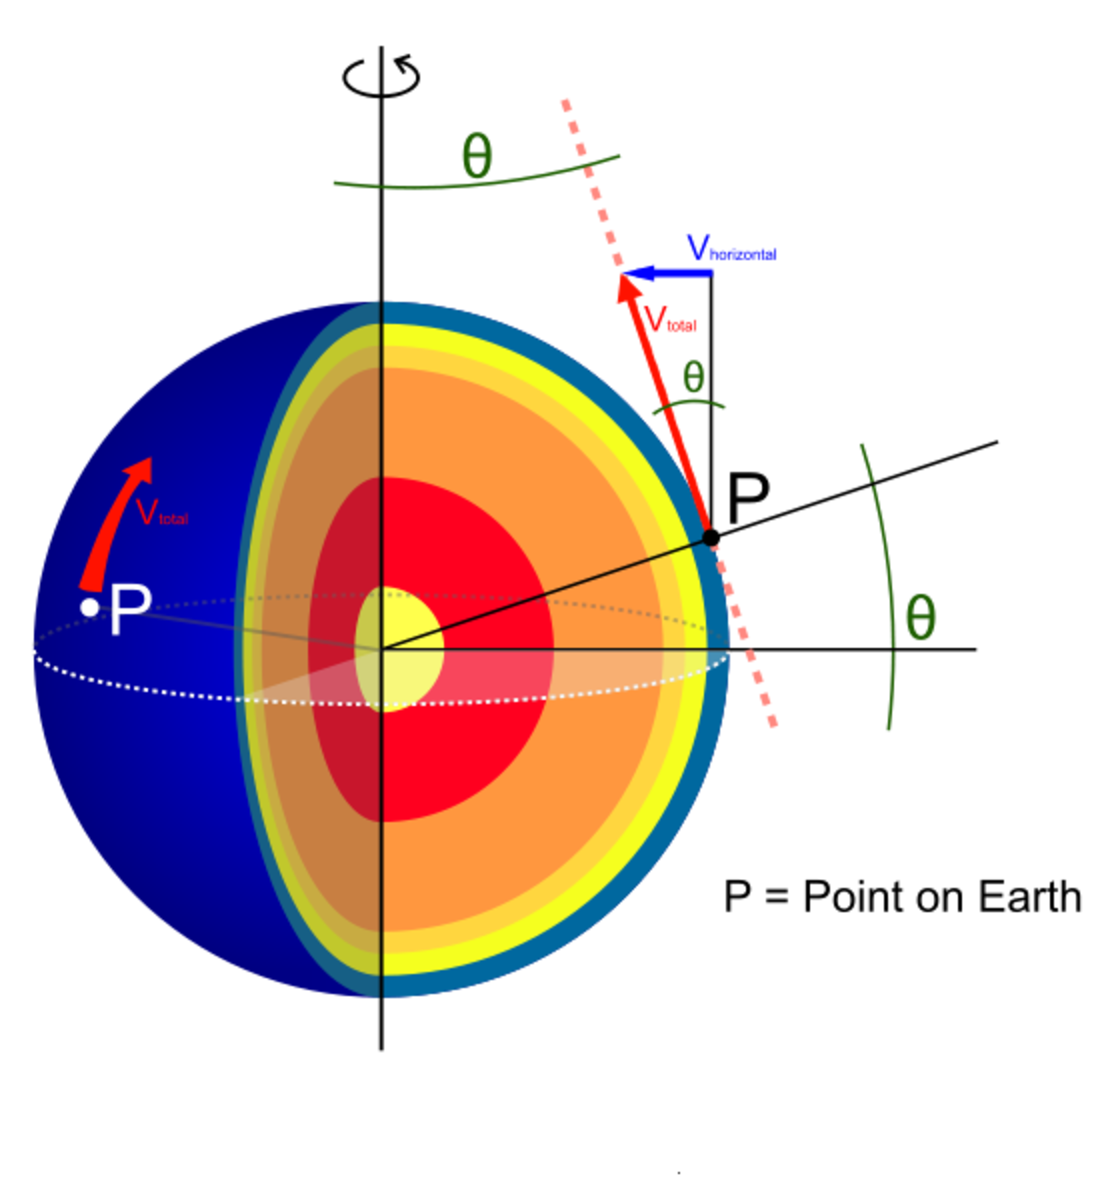 As the Earth has a curved surface, it is heated in an unequal way by the sun. The atmosphere then attempts to balance the differences.